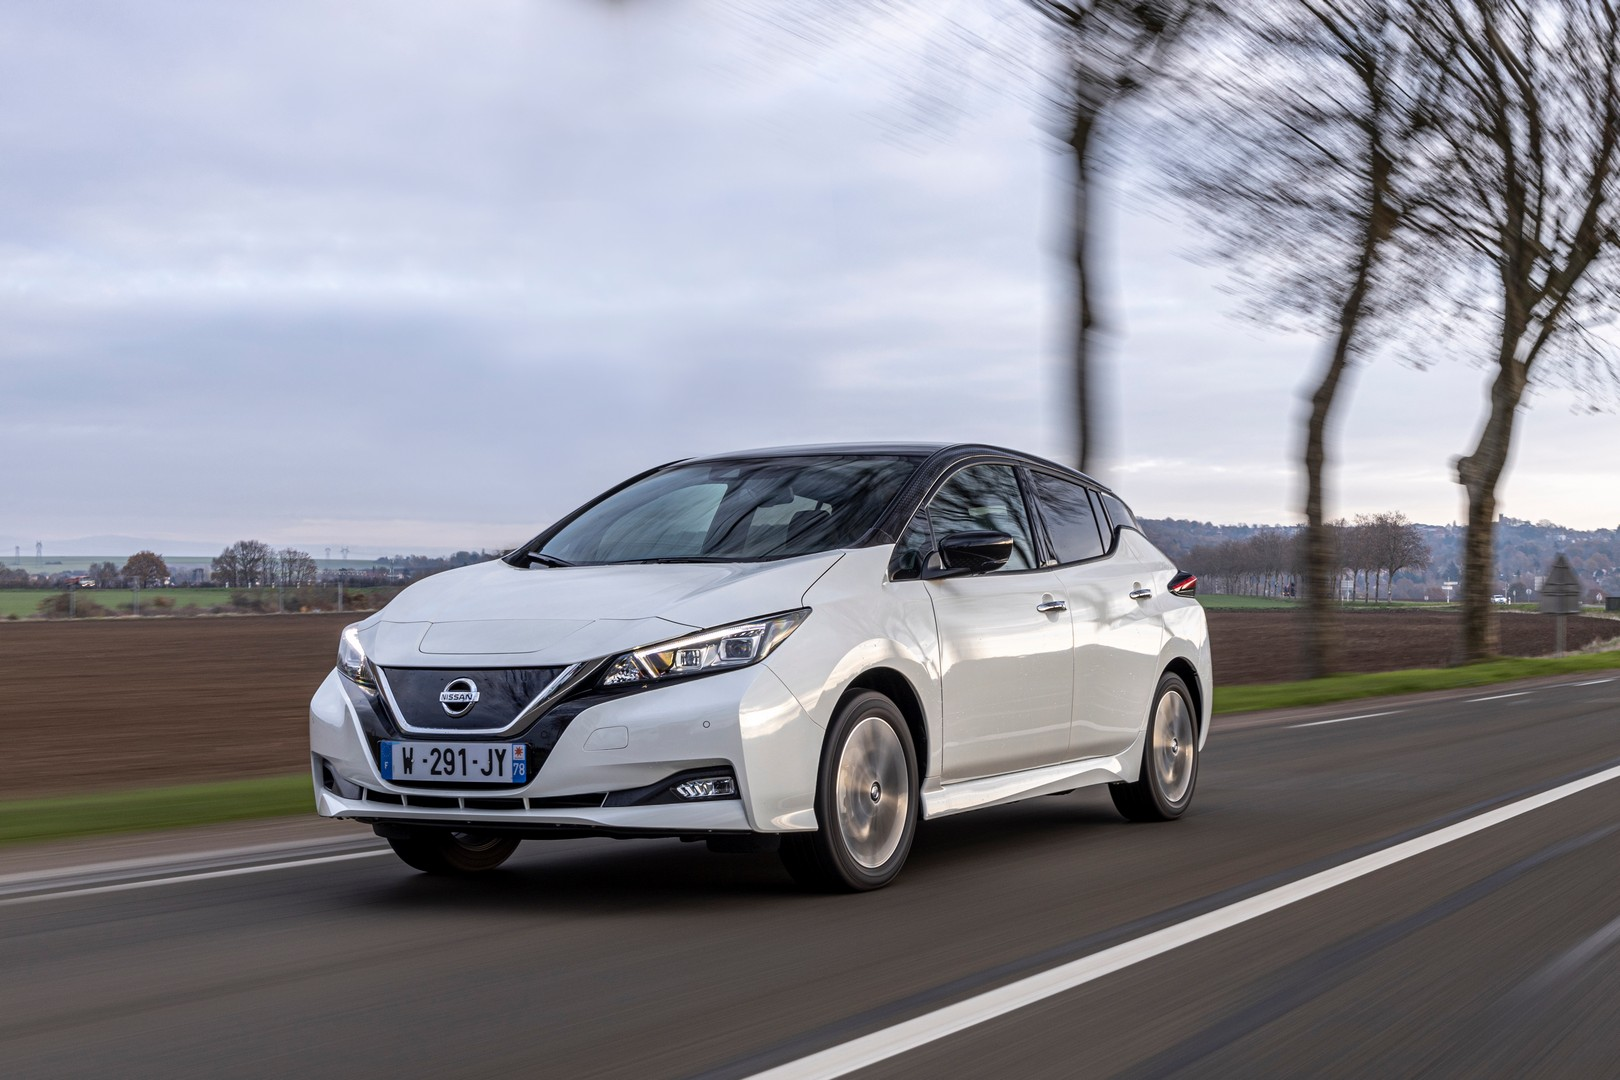 New Nissan Leaf10 Special Edition Celebrates 10th Anniversary Of The Japanese EV